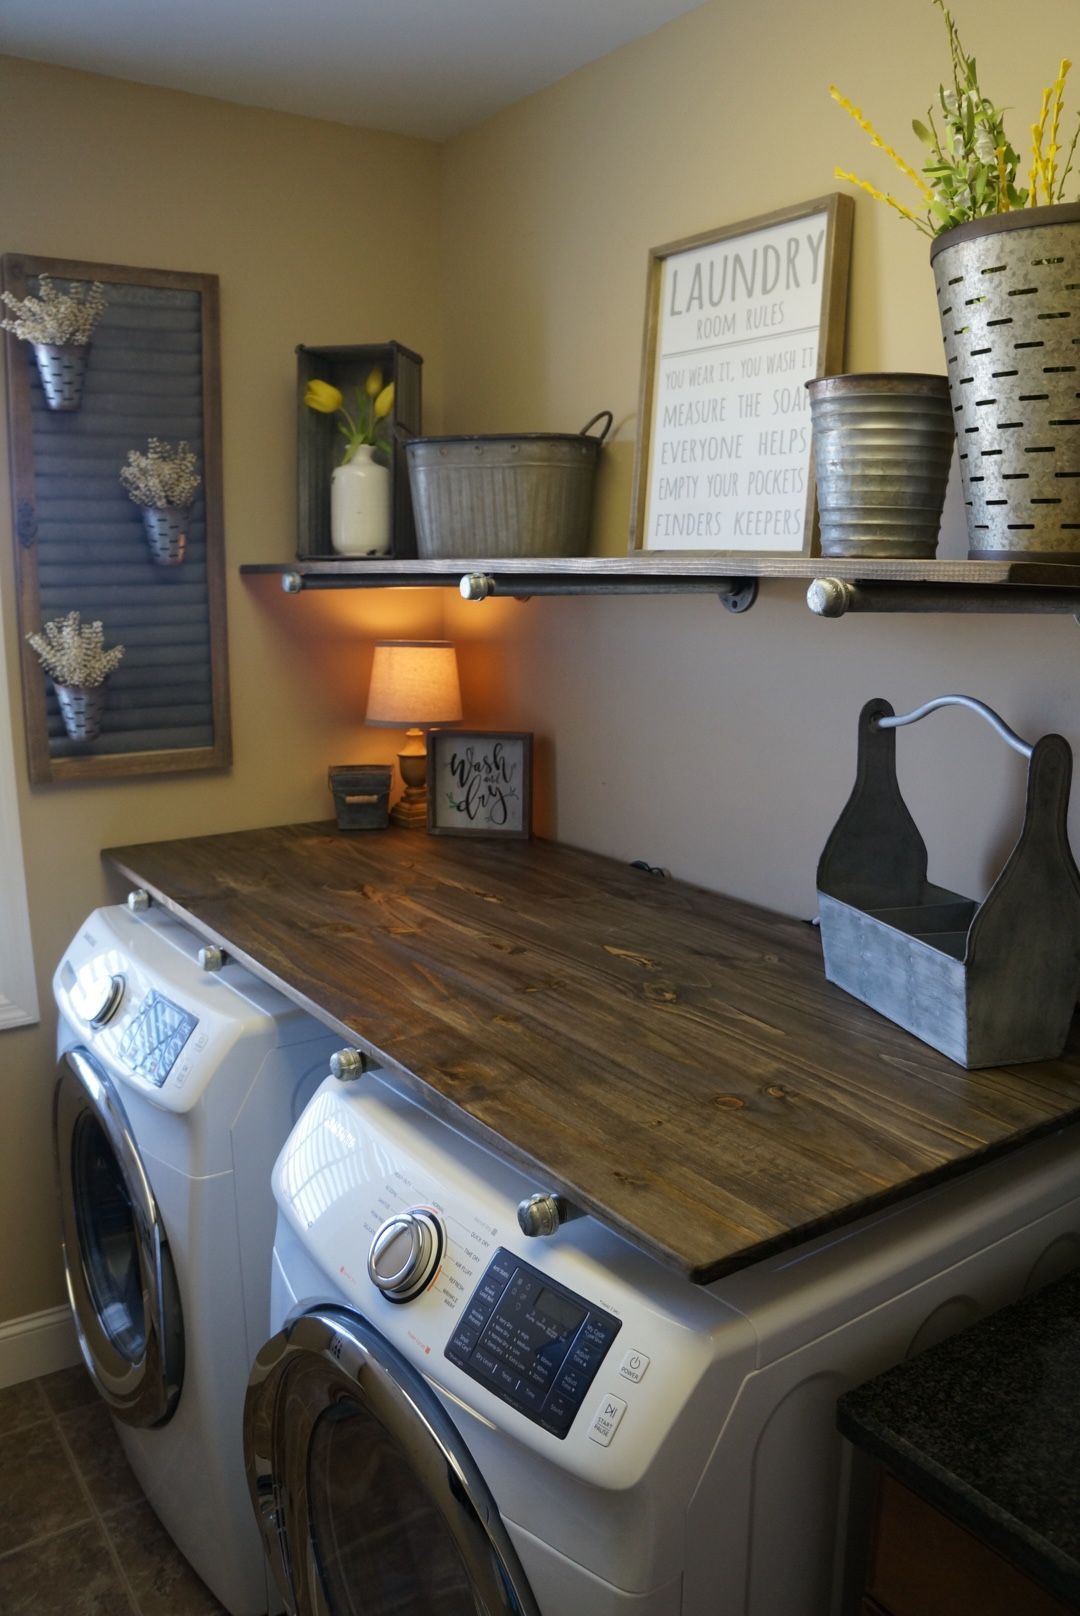 Laundry room makevover for under 250 with diy rustic for Laundry room shelving